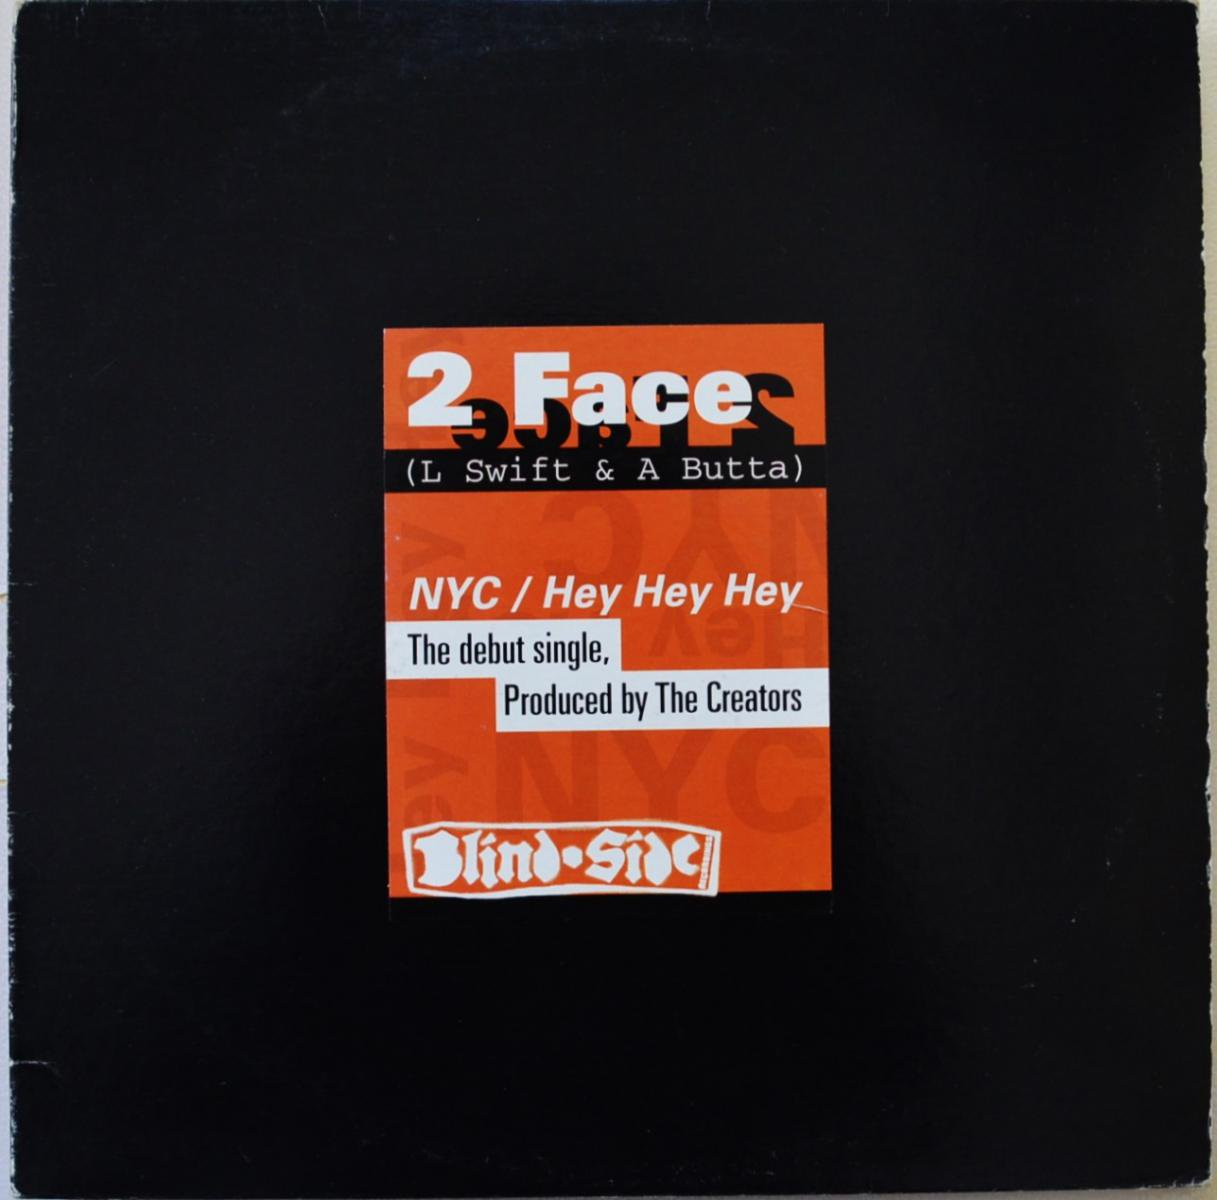 2 FACE (A-BUTTA,L SWIFT) / NYC / HEY HEY HEY (PROD BY THE CREATORS) (12